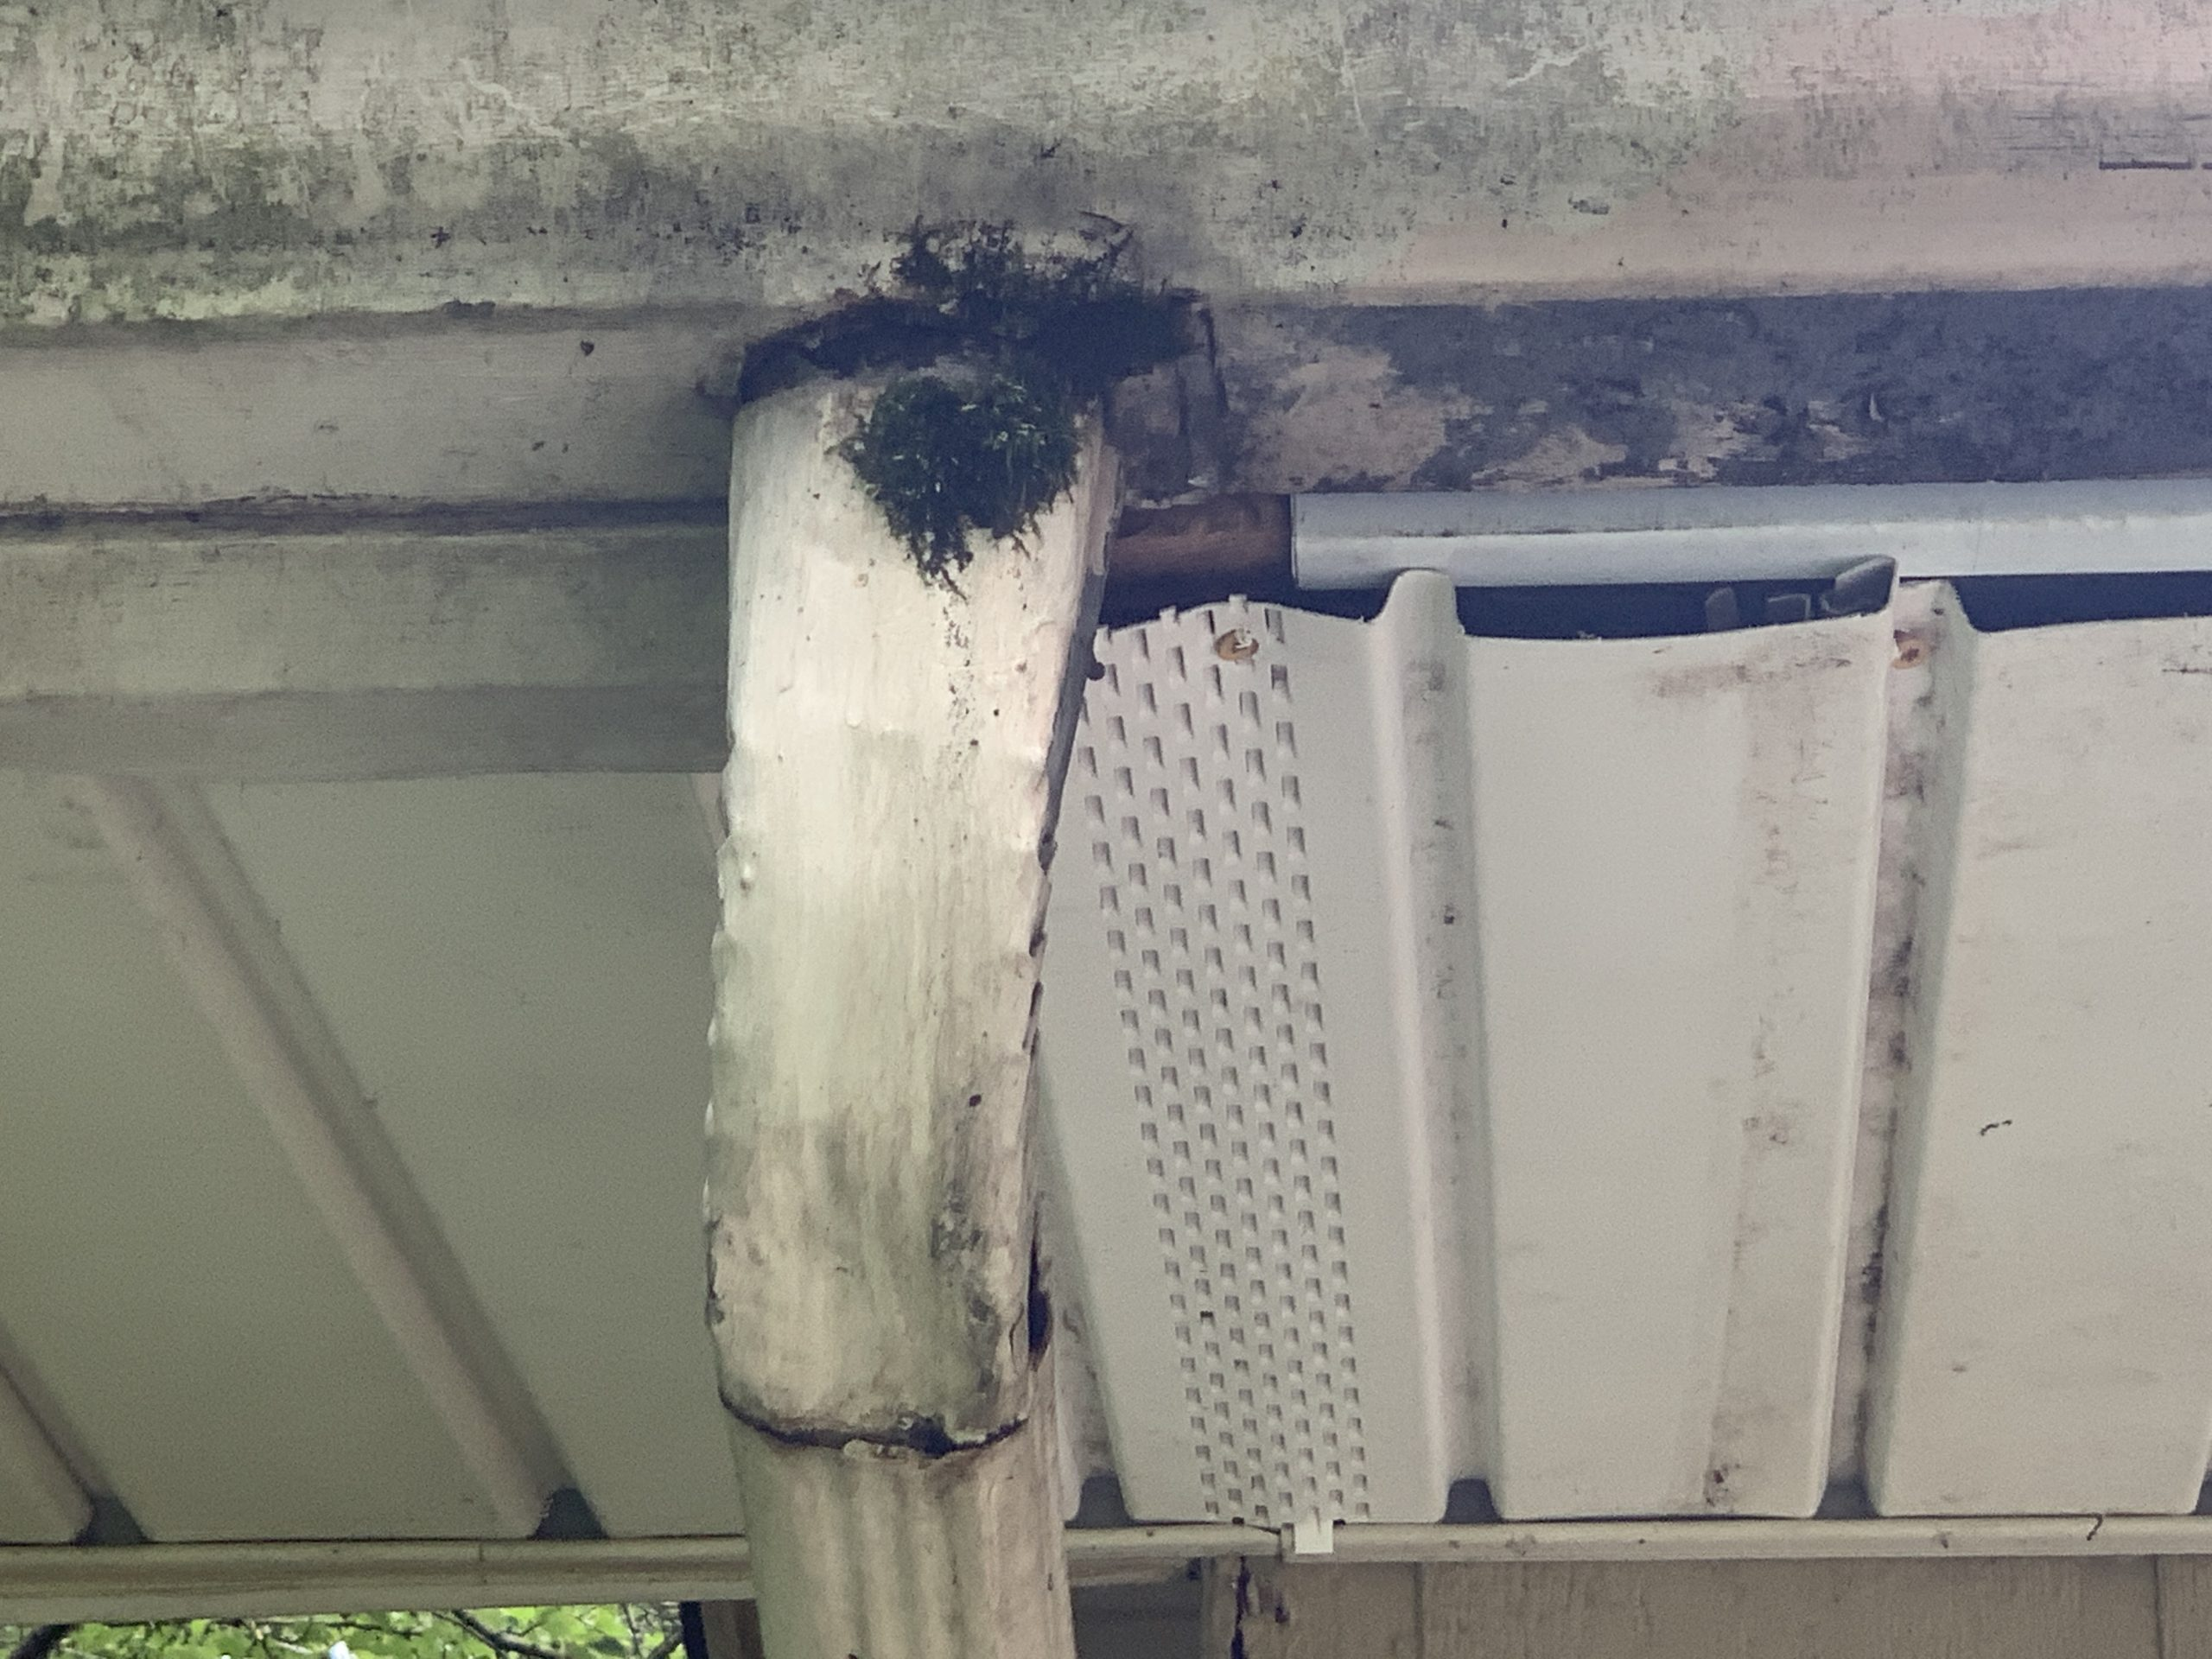 this is a picture of a gutter downspout that has been poorly repaired with roofing cement